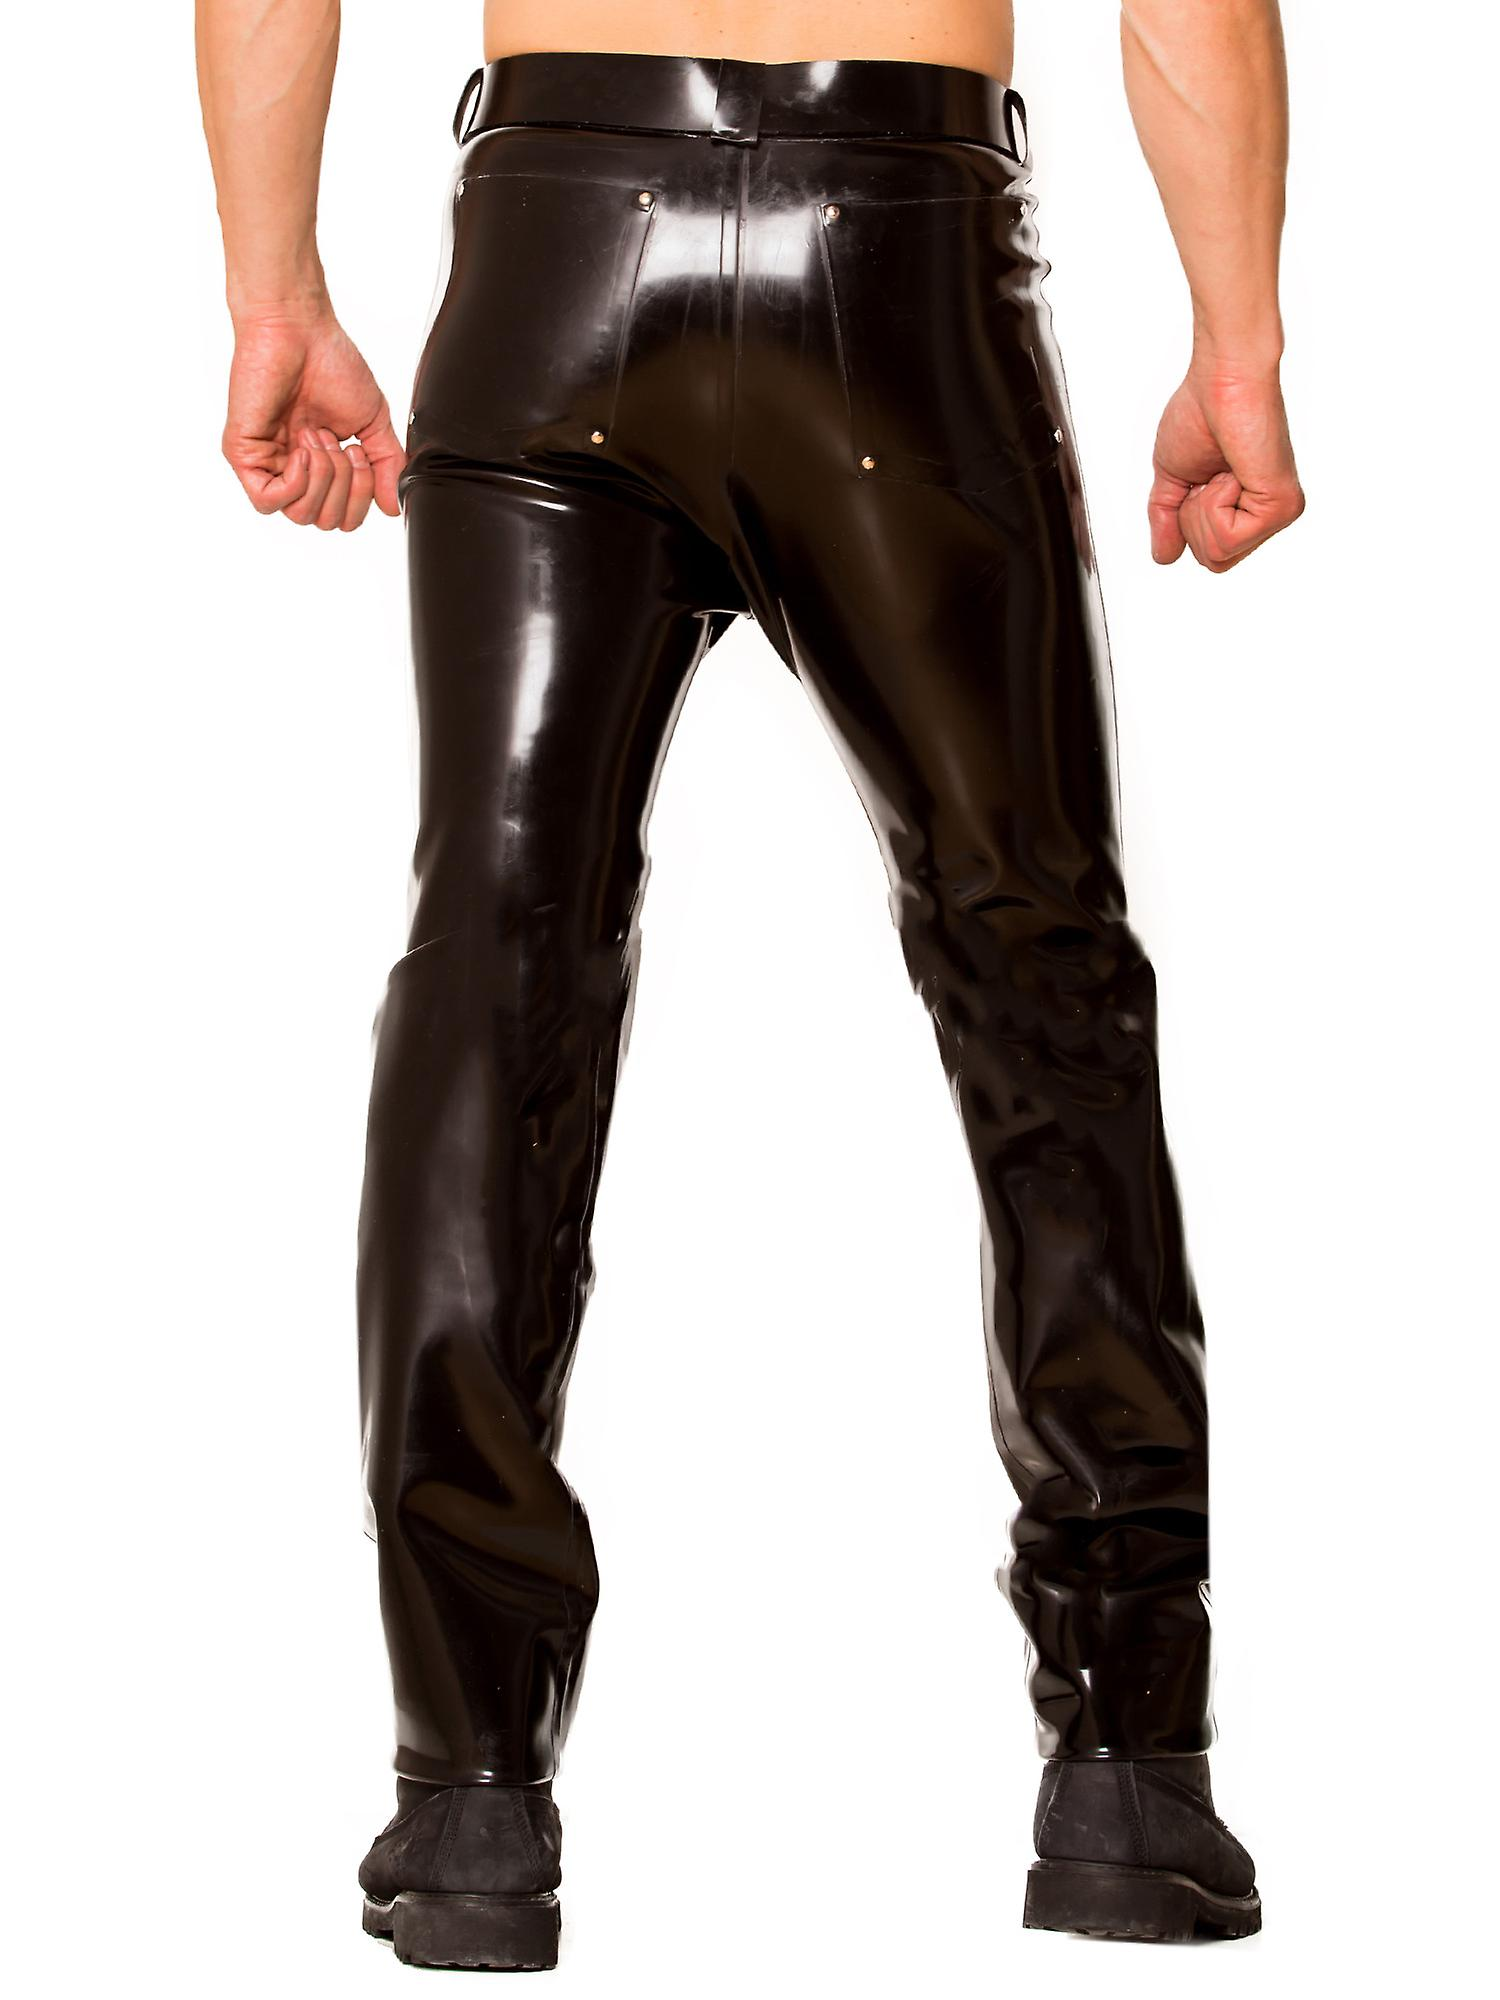 Skin Two Clothing Men's Jeans Pants Classic Cut Midnight Latex Rubber Black